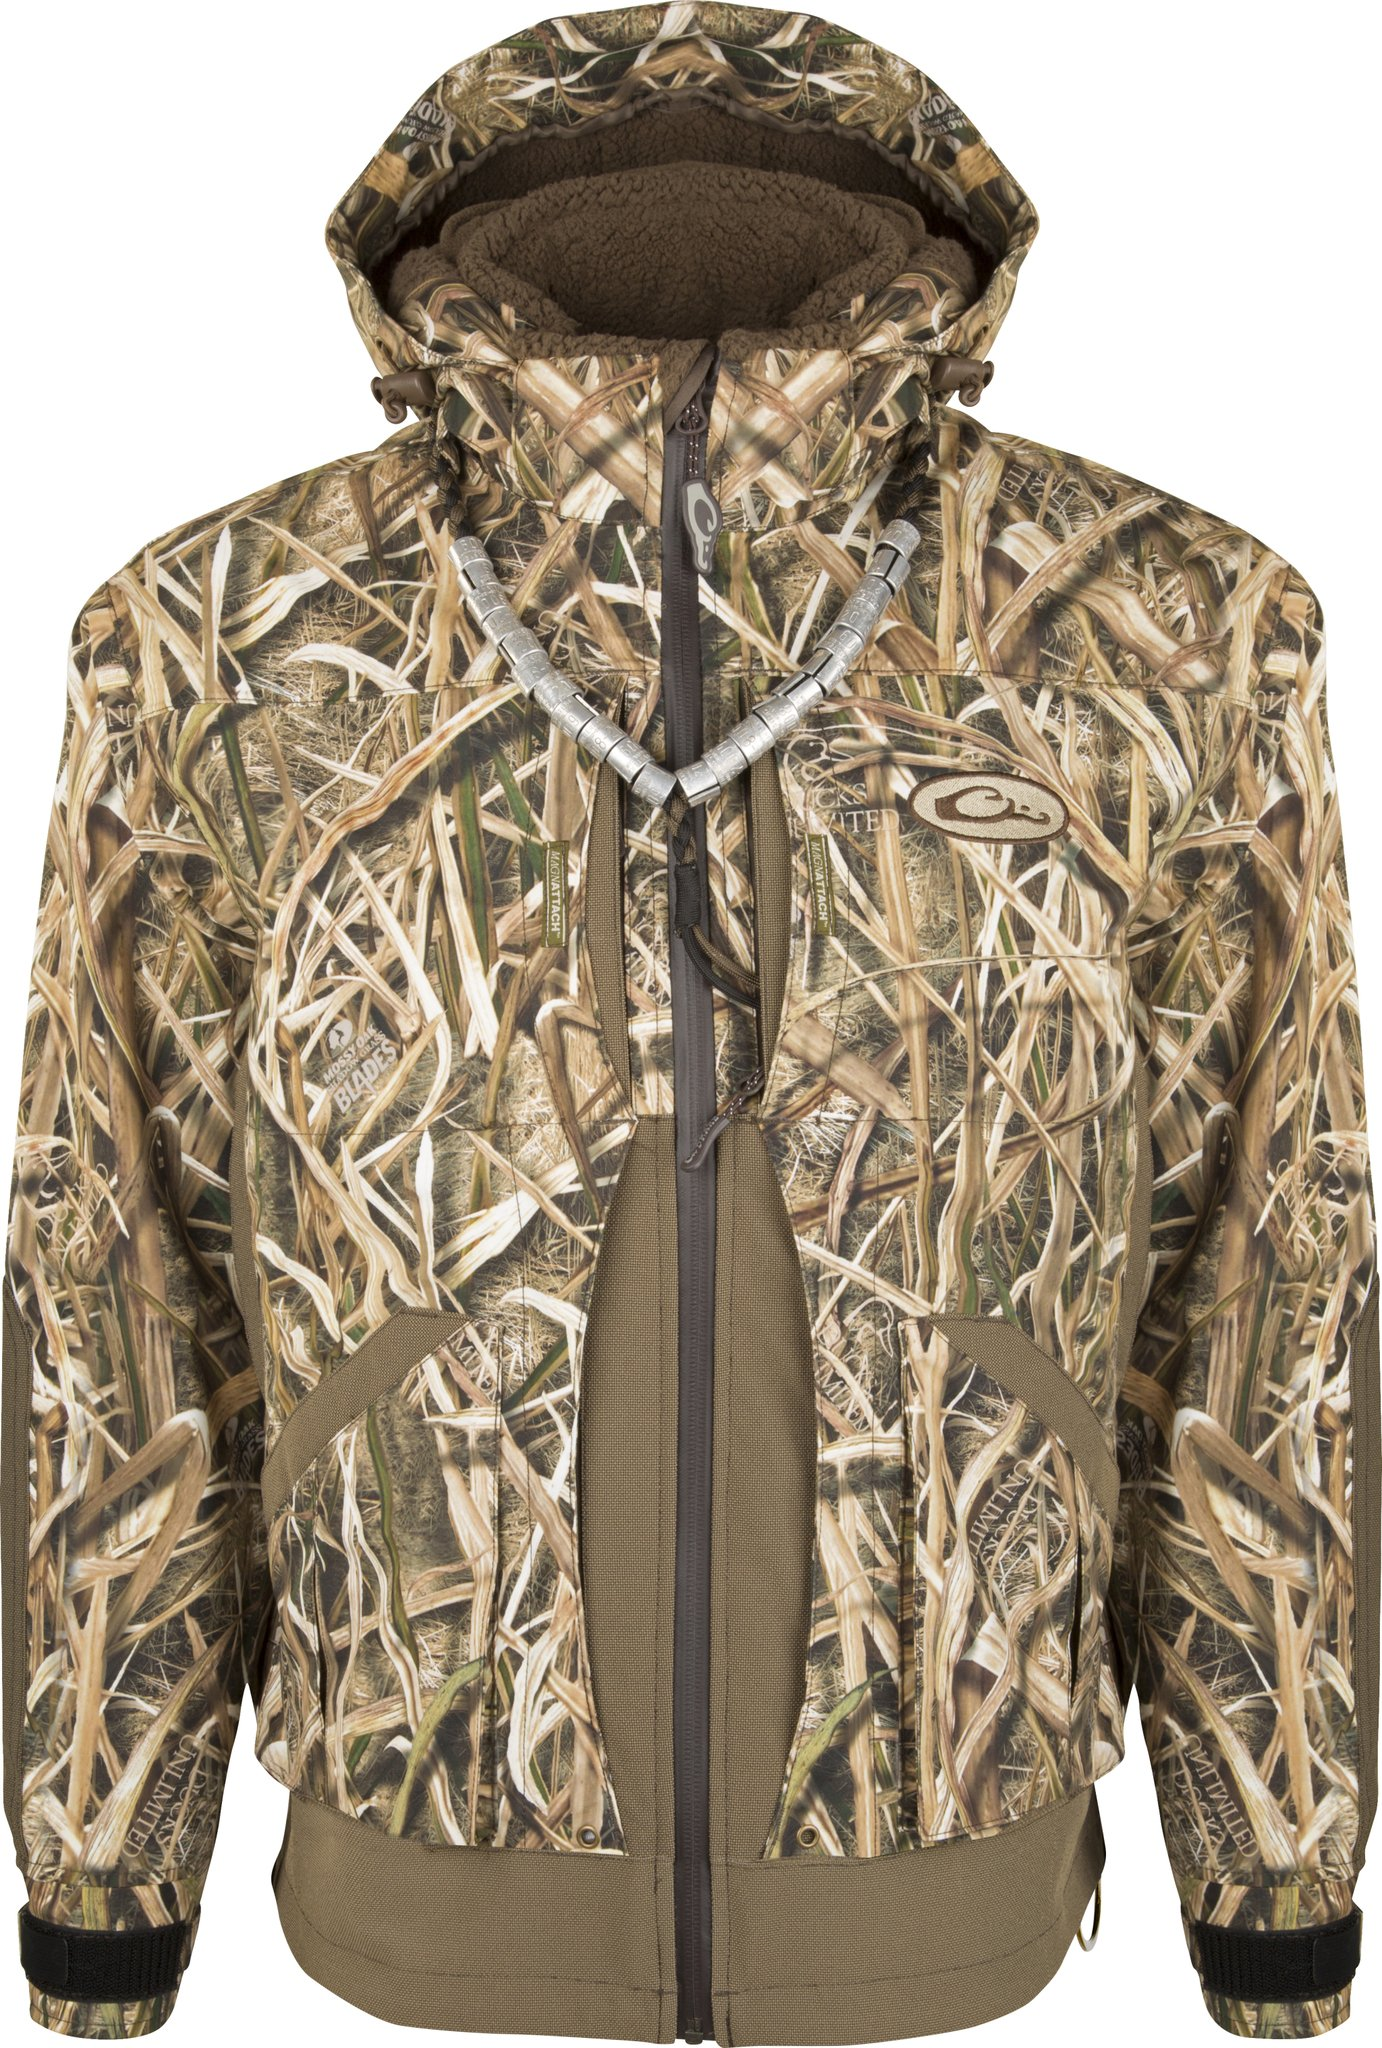 Drake Guardian Elite 3-in-1 Systems Coat (Blades, 2X-Large)